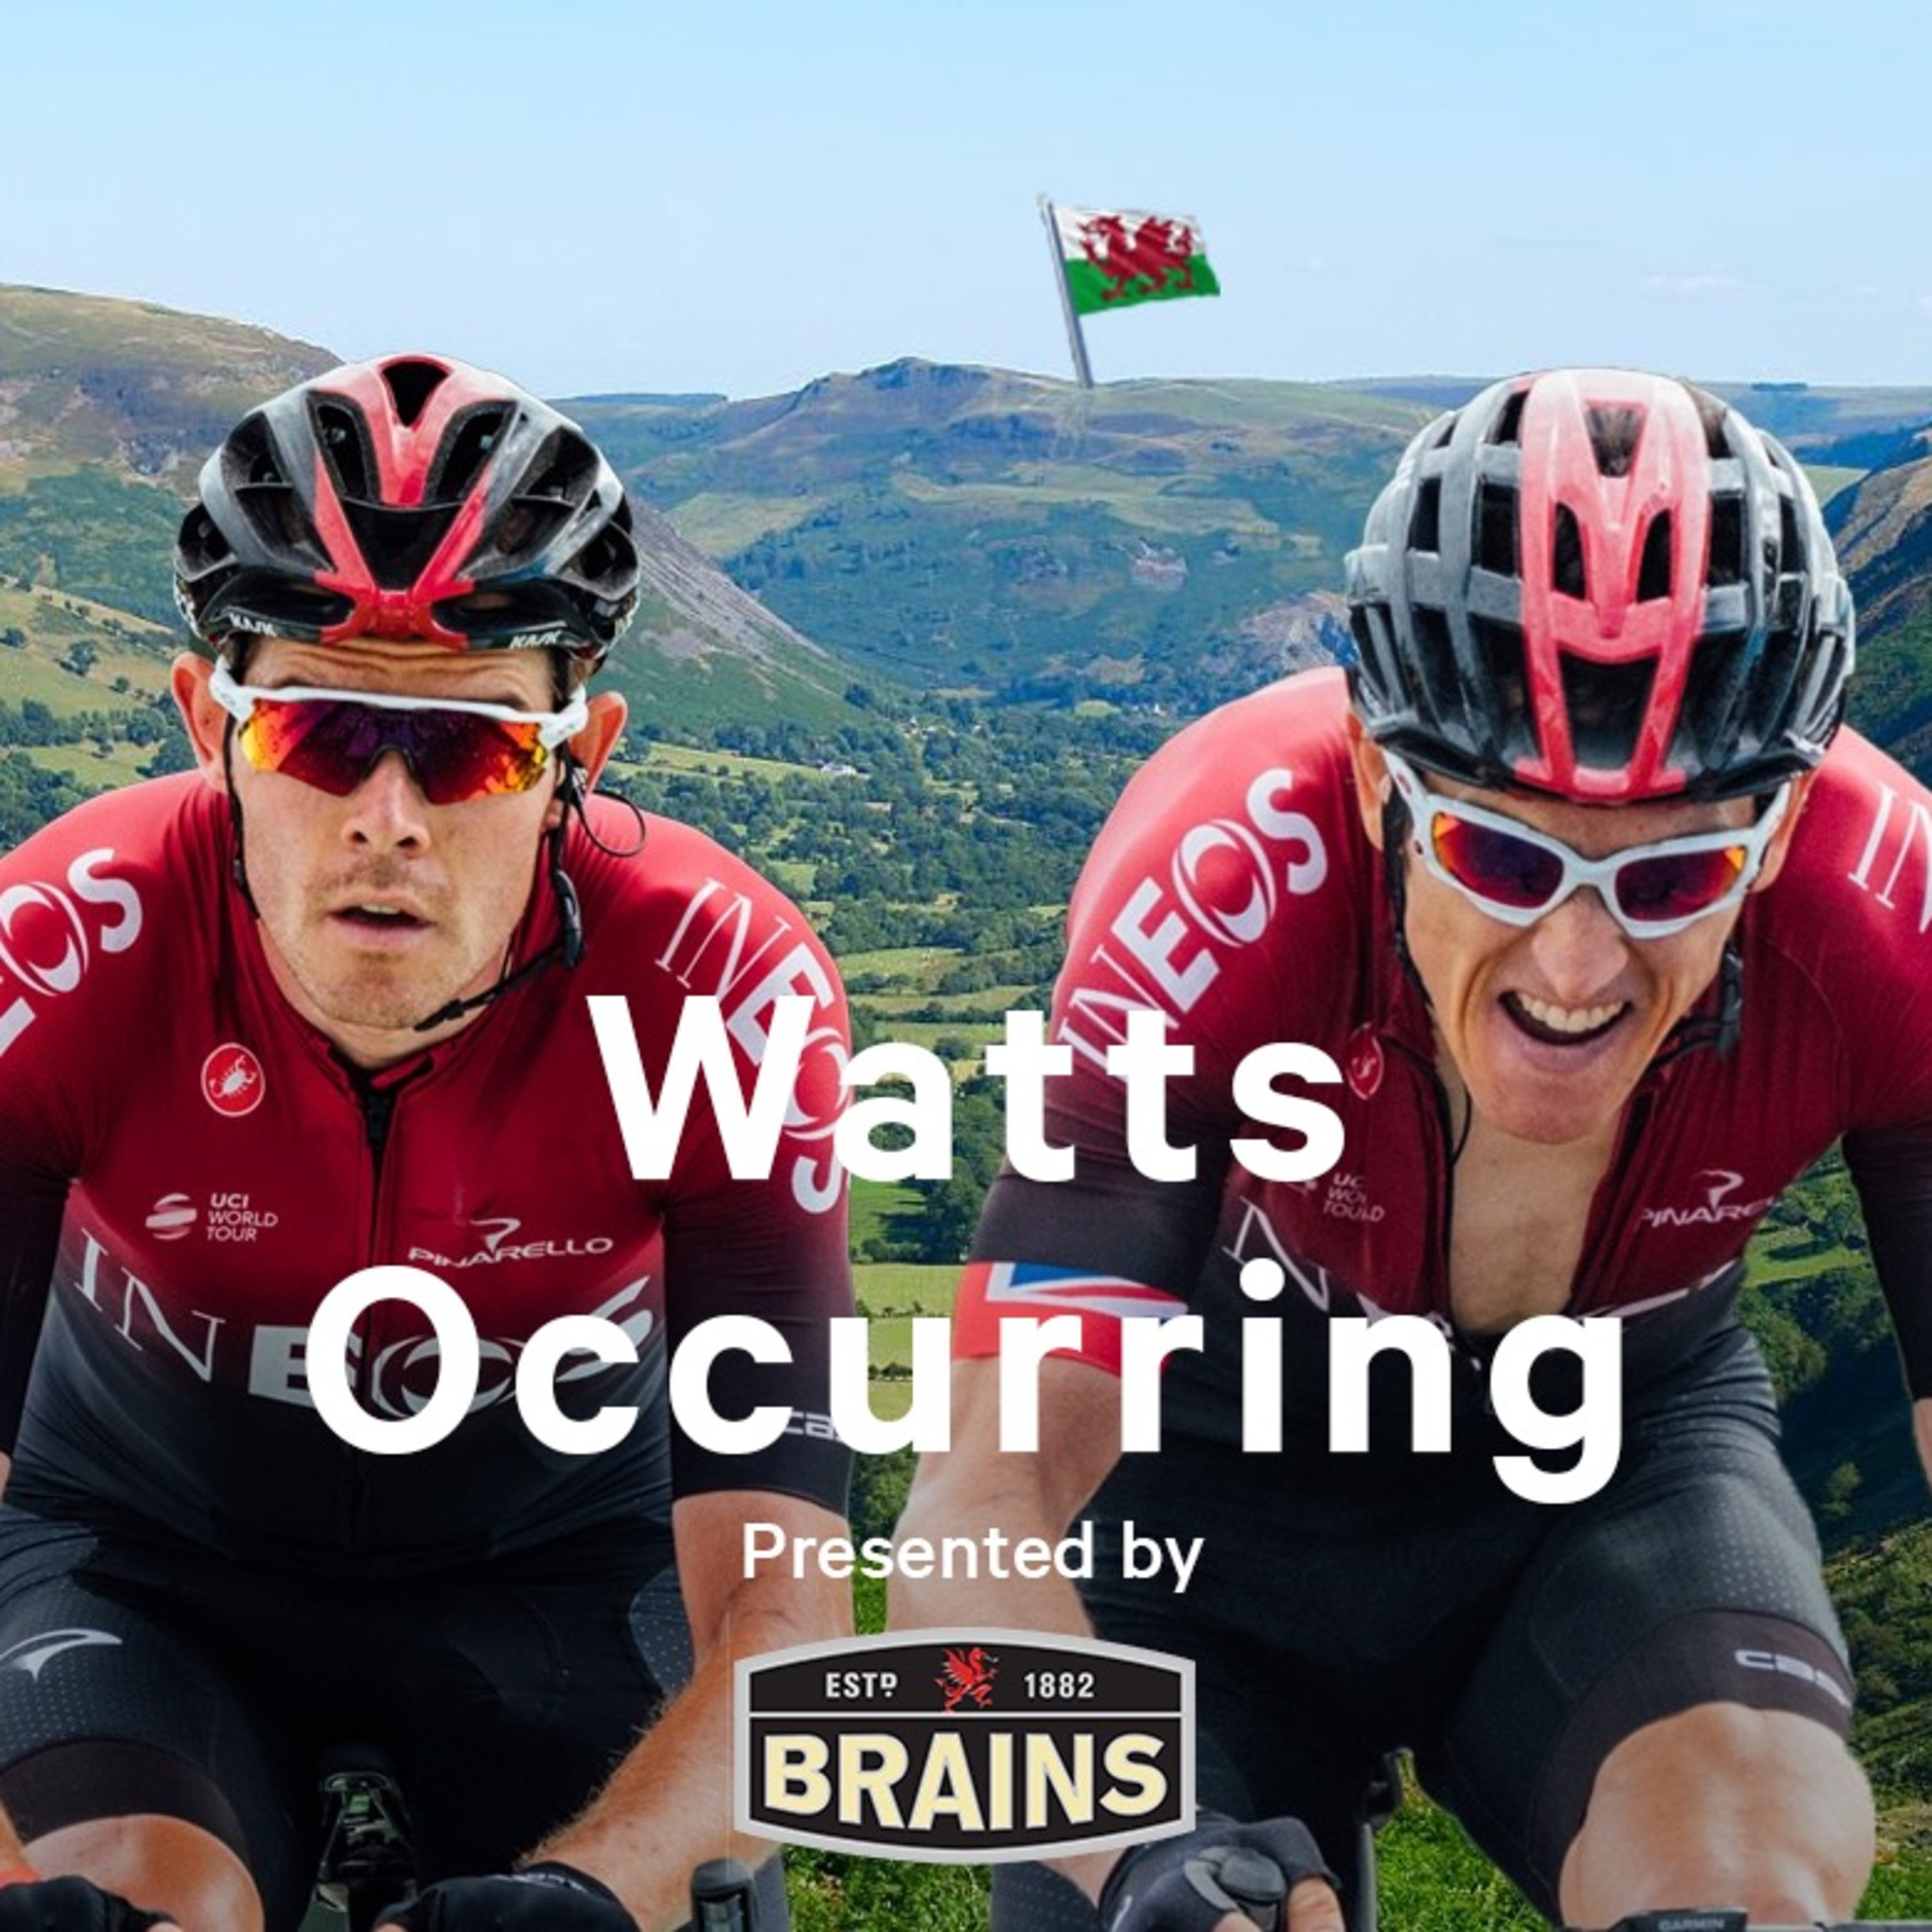 Episode 12 - Watts Occurring presented by Brains